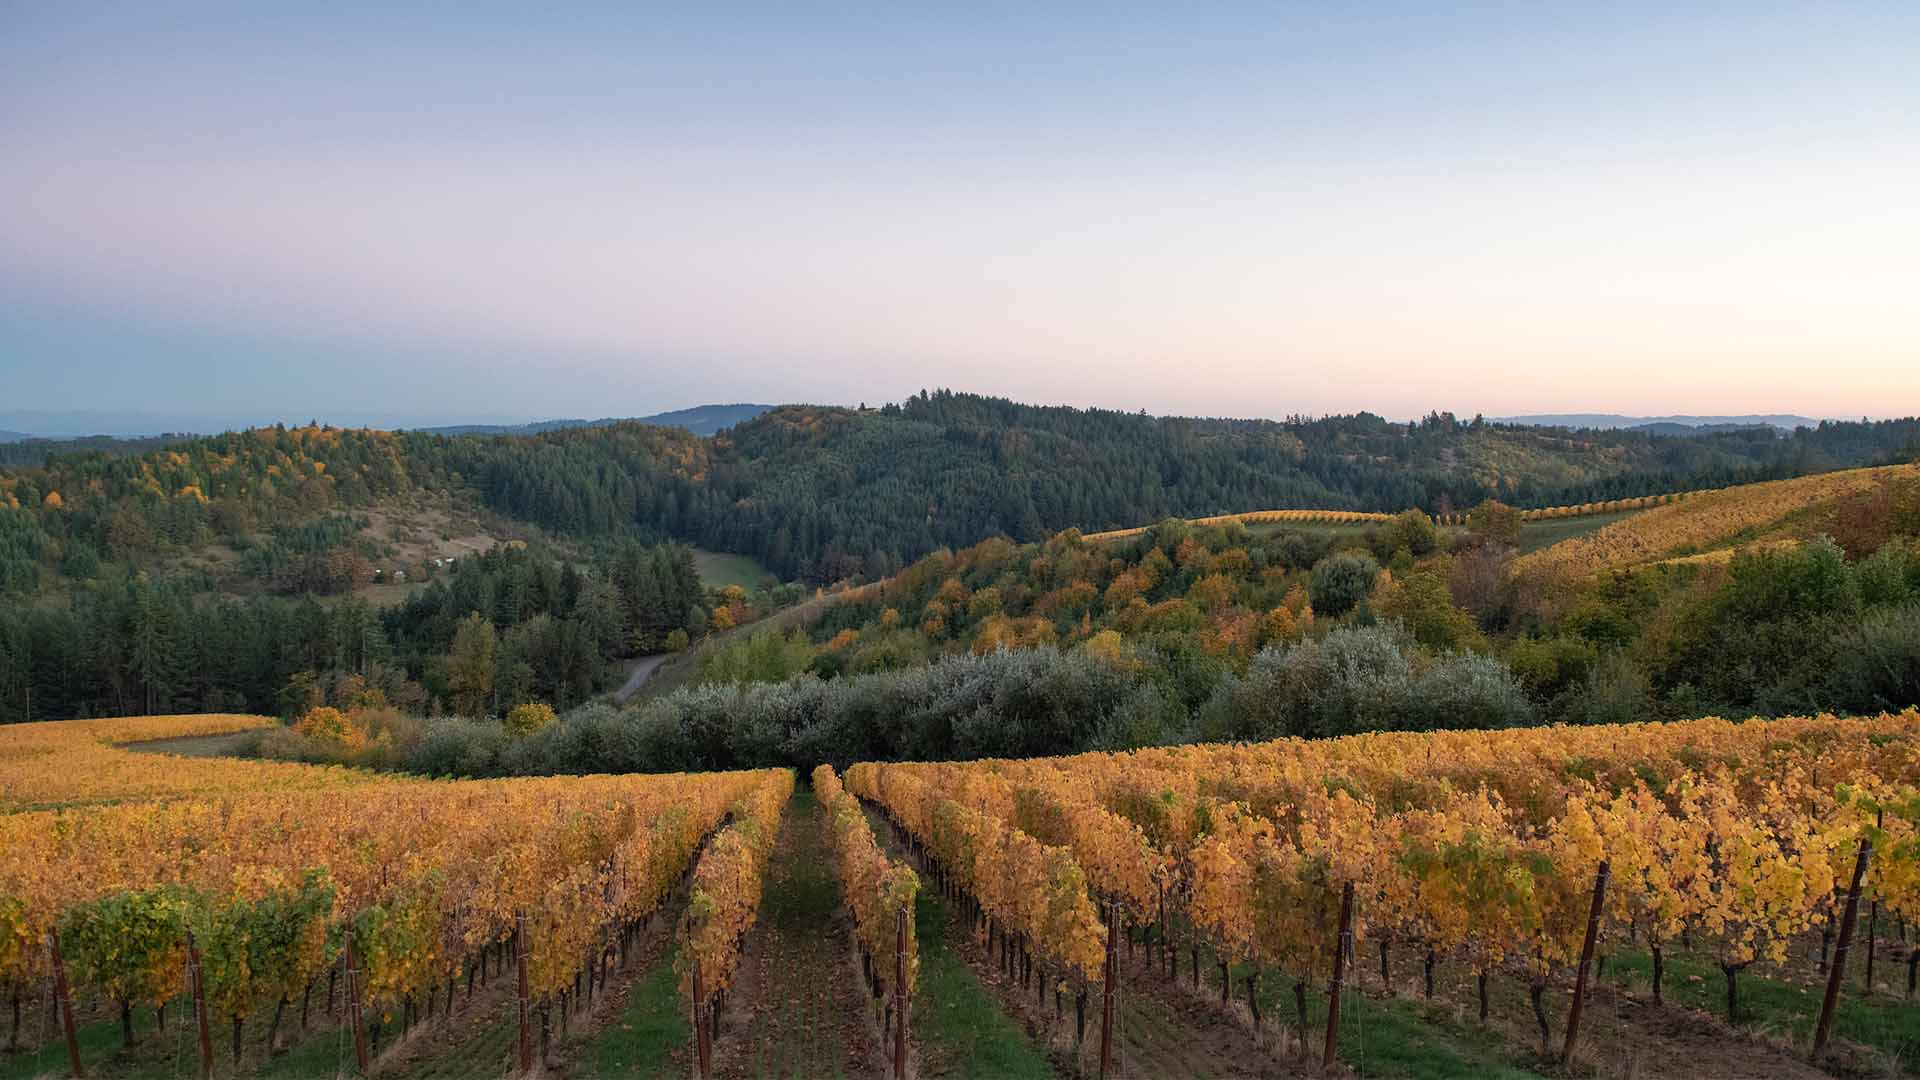 Fairsing Vineyard awash in harvest colors beneath an October sky in Oregon's Willamette Valley